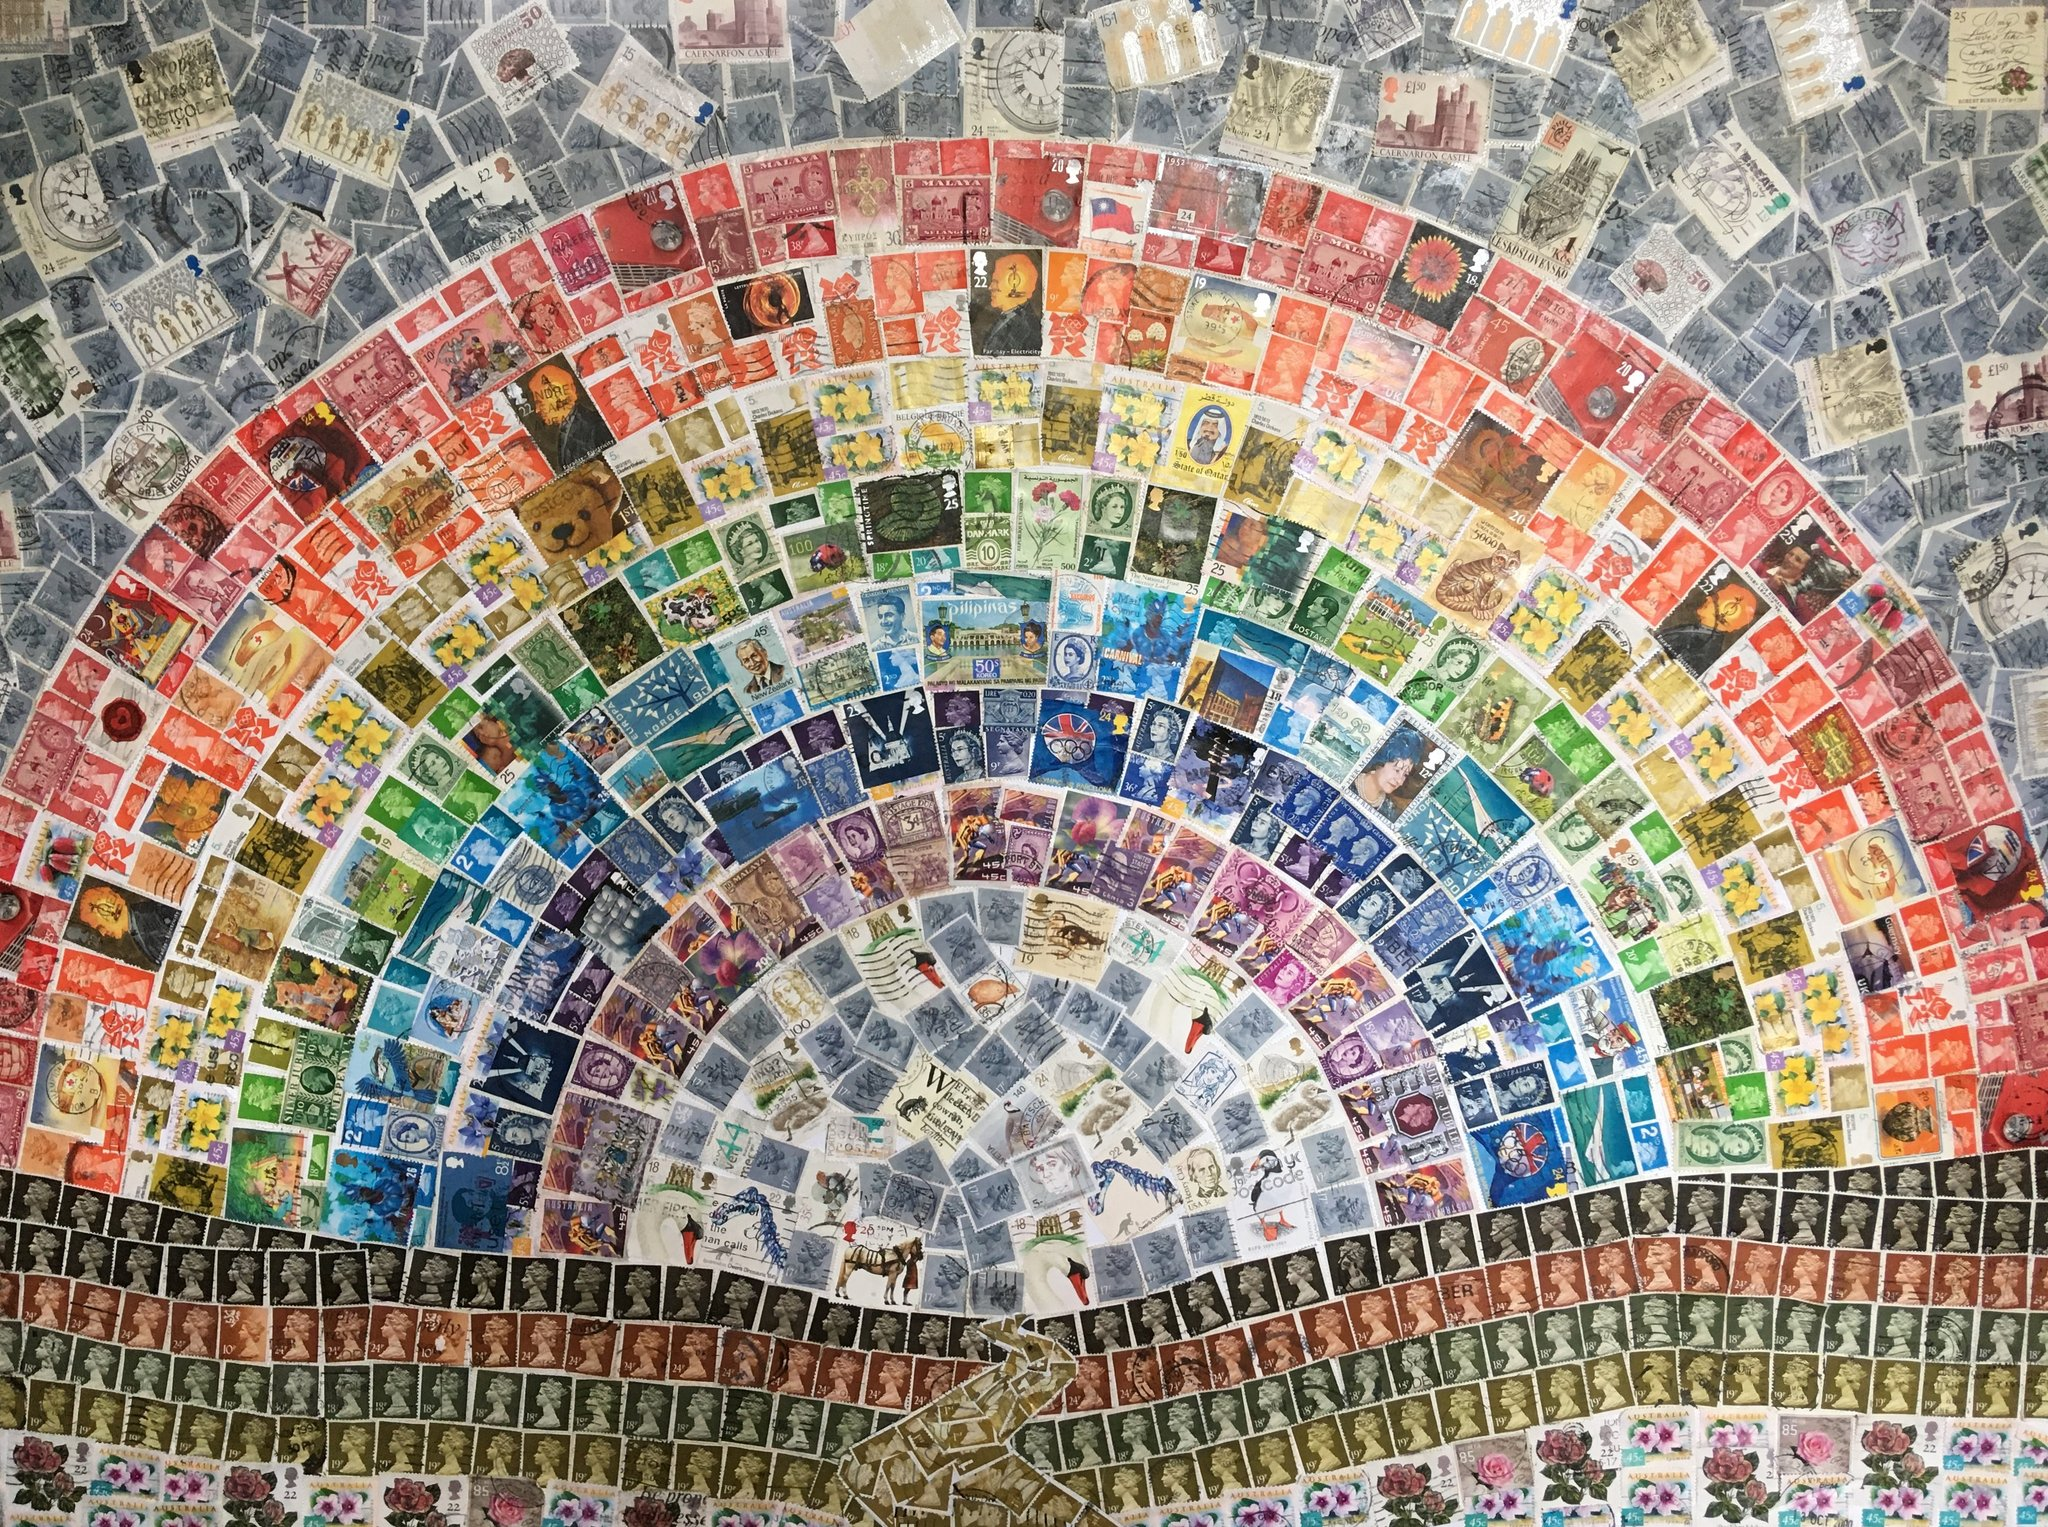 Image shows a rainbow made of stamps. Title of piece is Stamp Arc, by Helen Wood